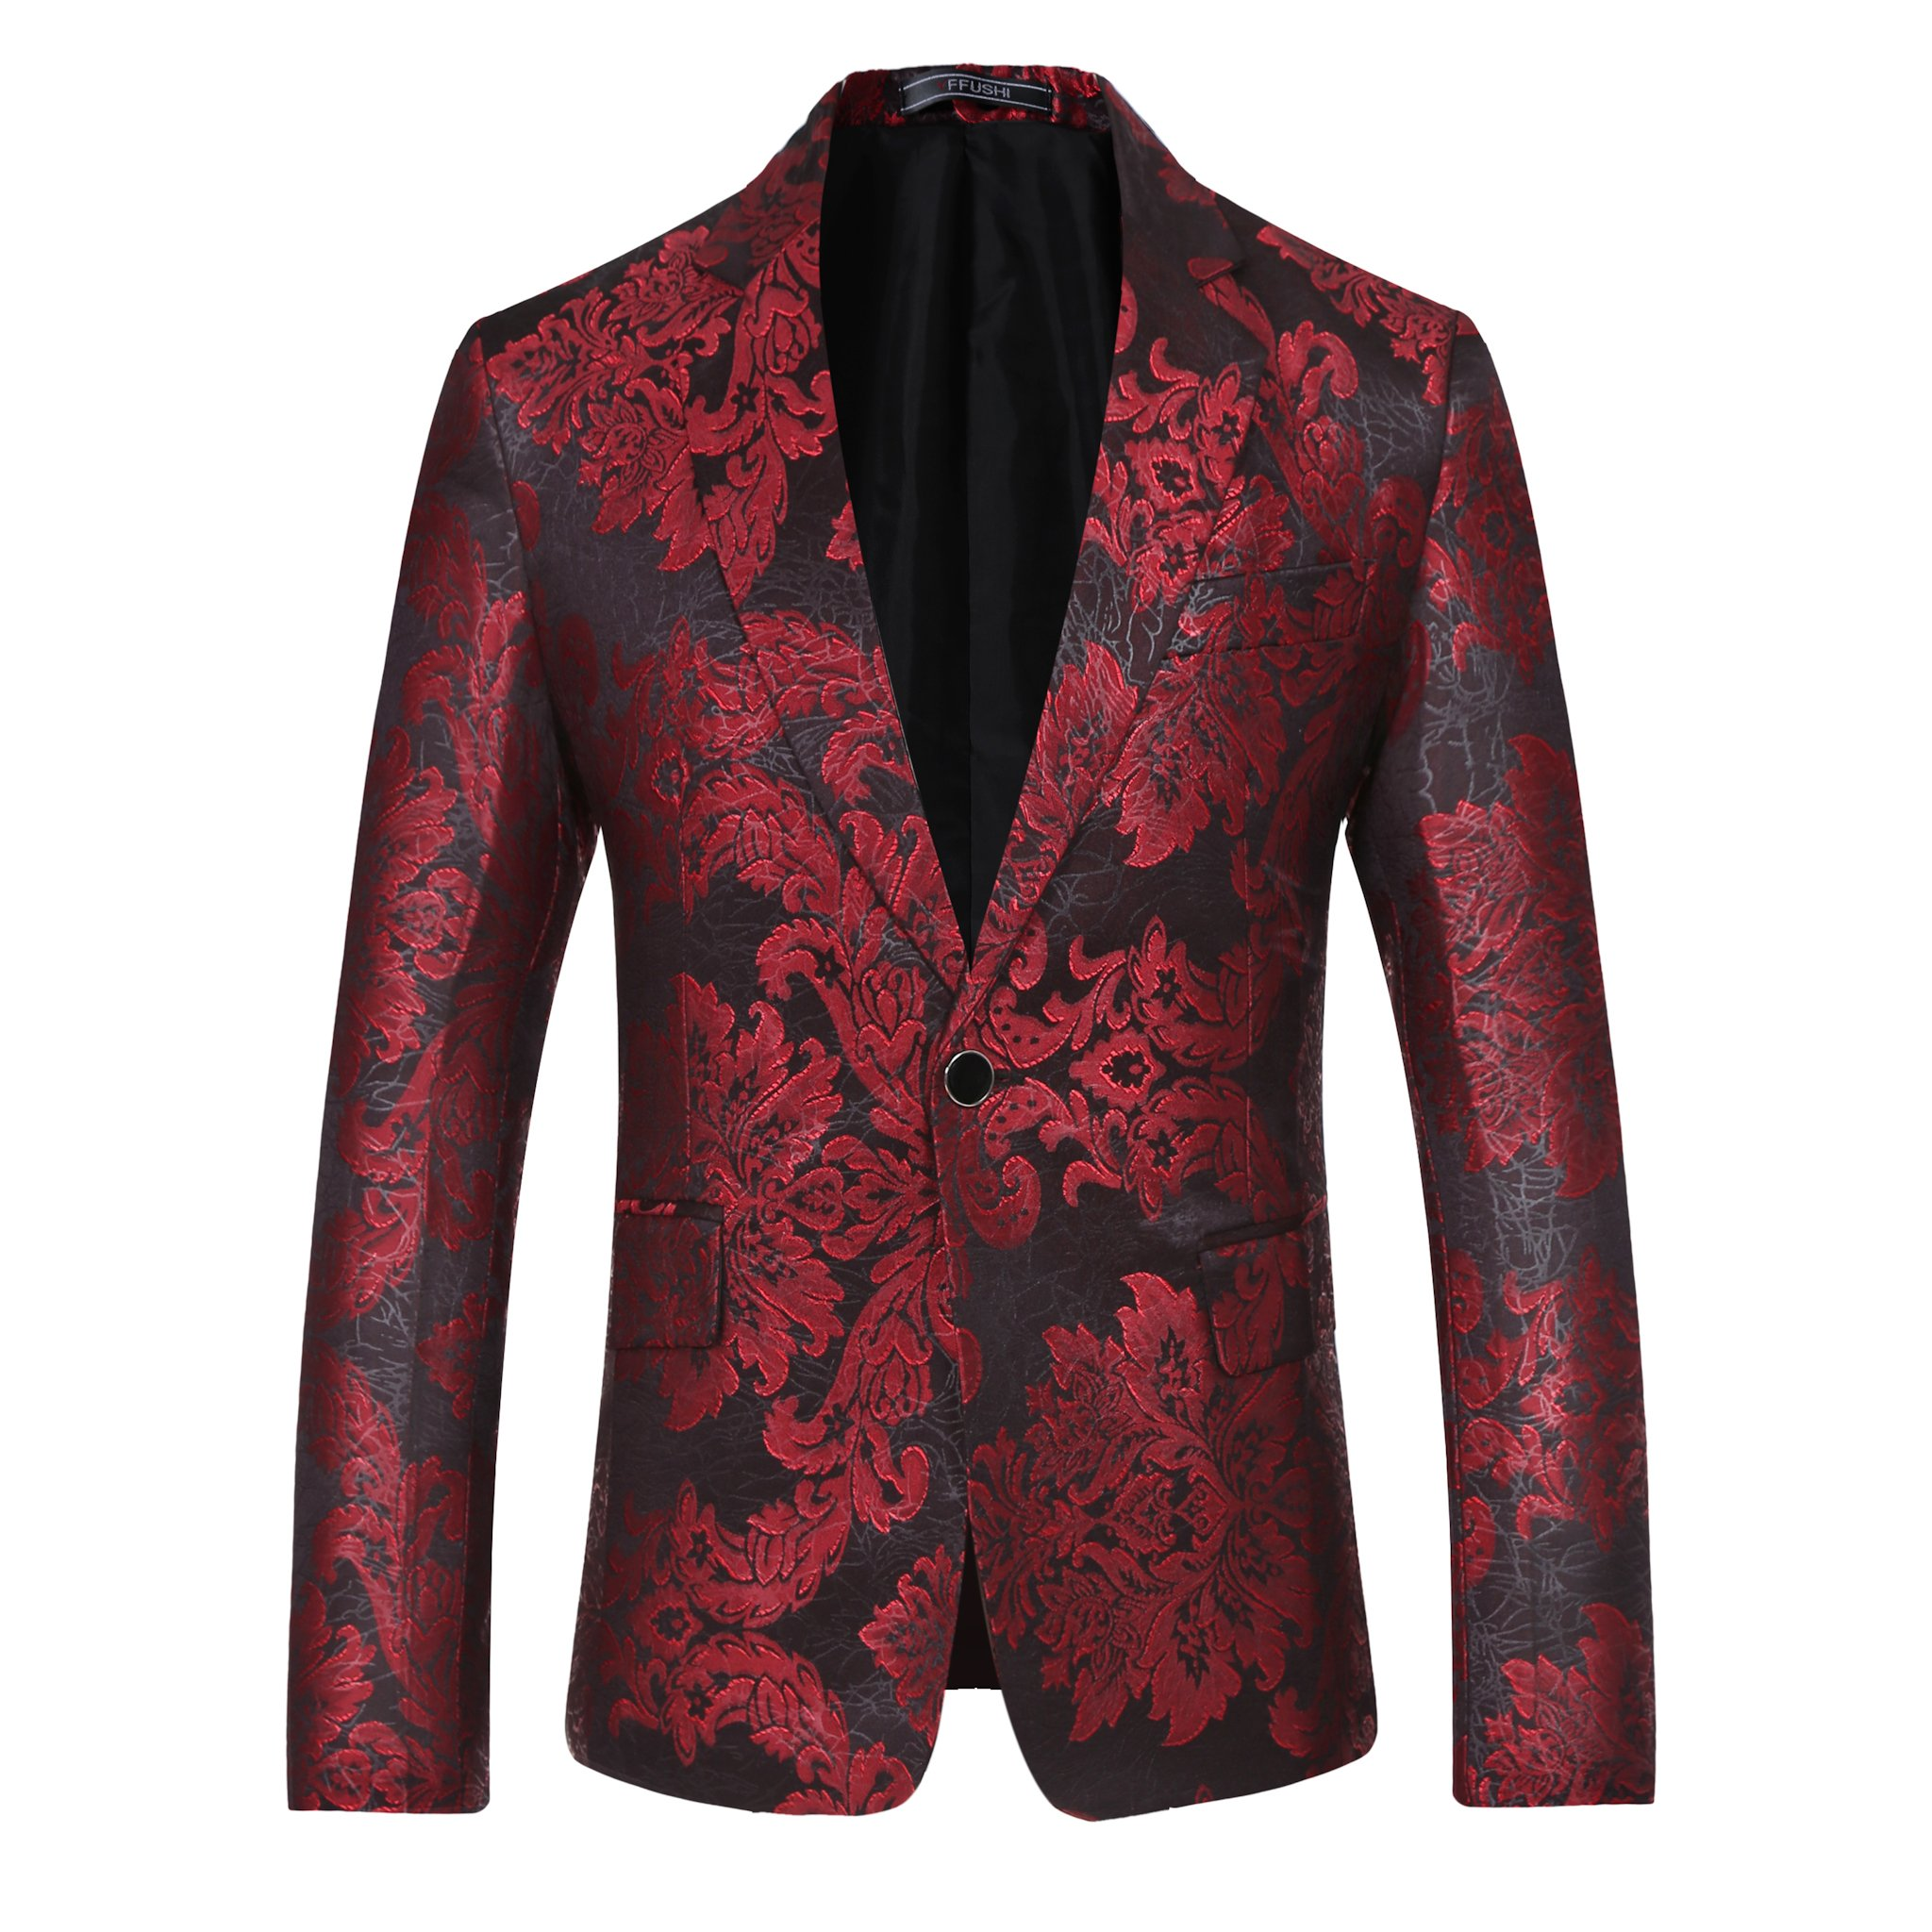 Mens Stylish One Button Red Floral Printed Jacket Slim Fit by YFFUSHI